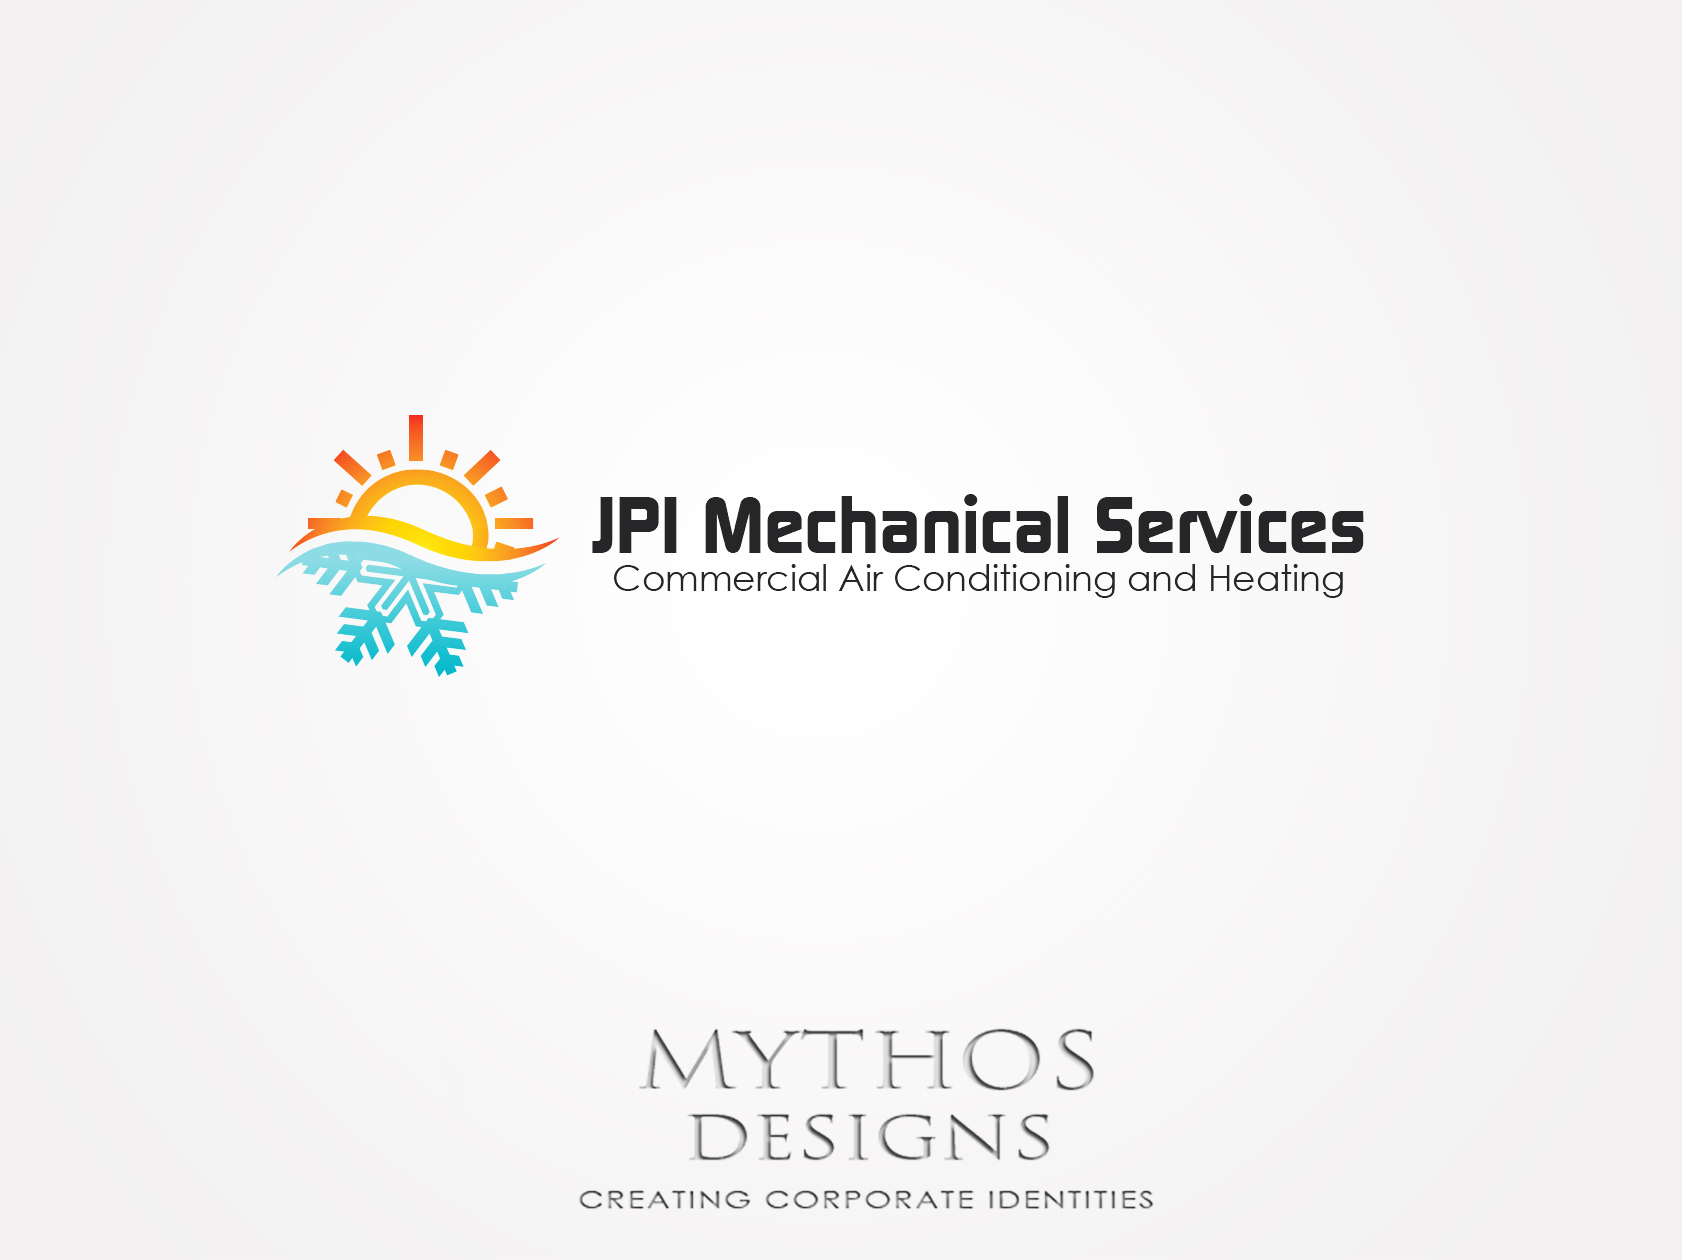 Logo Design by Mythos Designs - Entry No. 73 in the Logo Design Contest Inspiring Logo Design for JPI Mecanical Services.